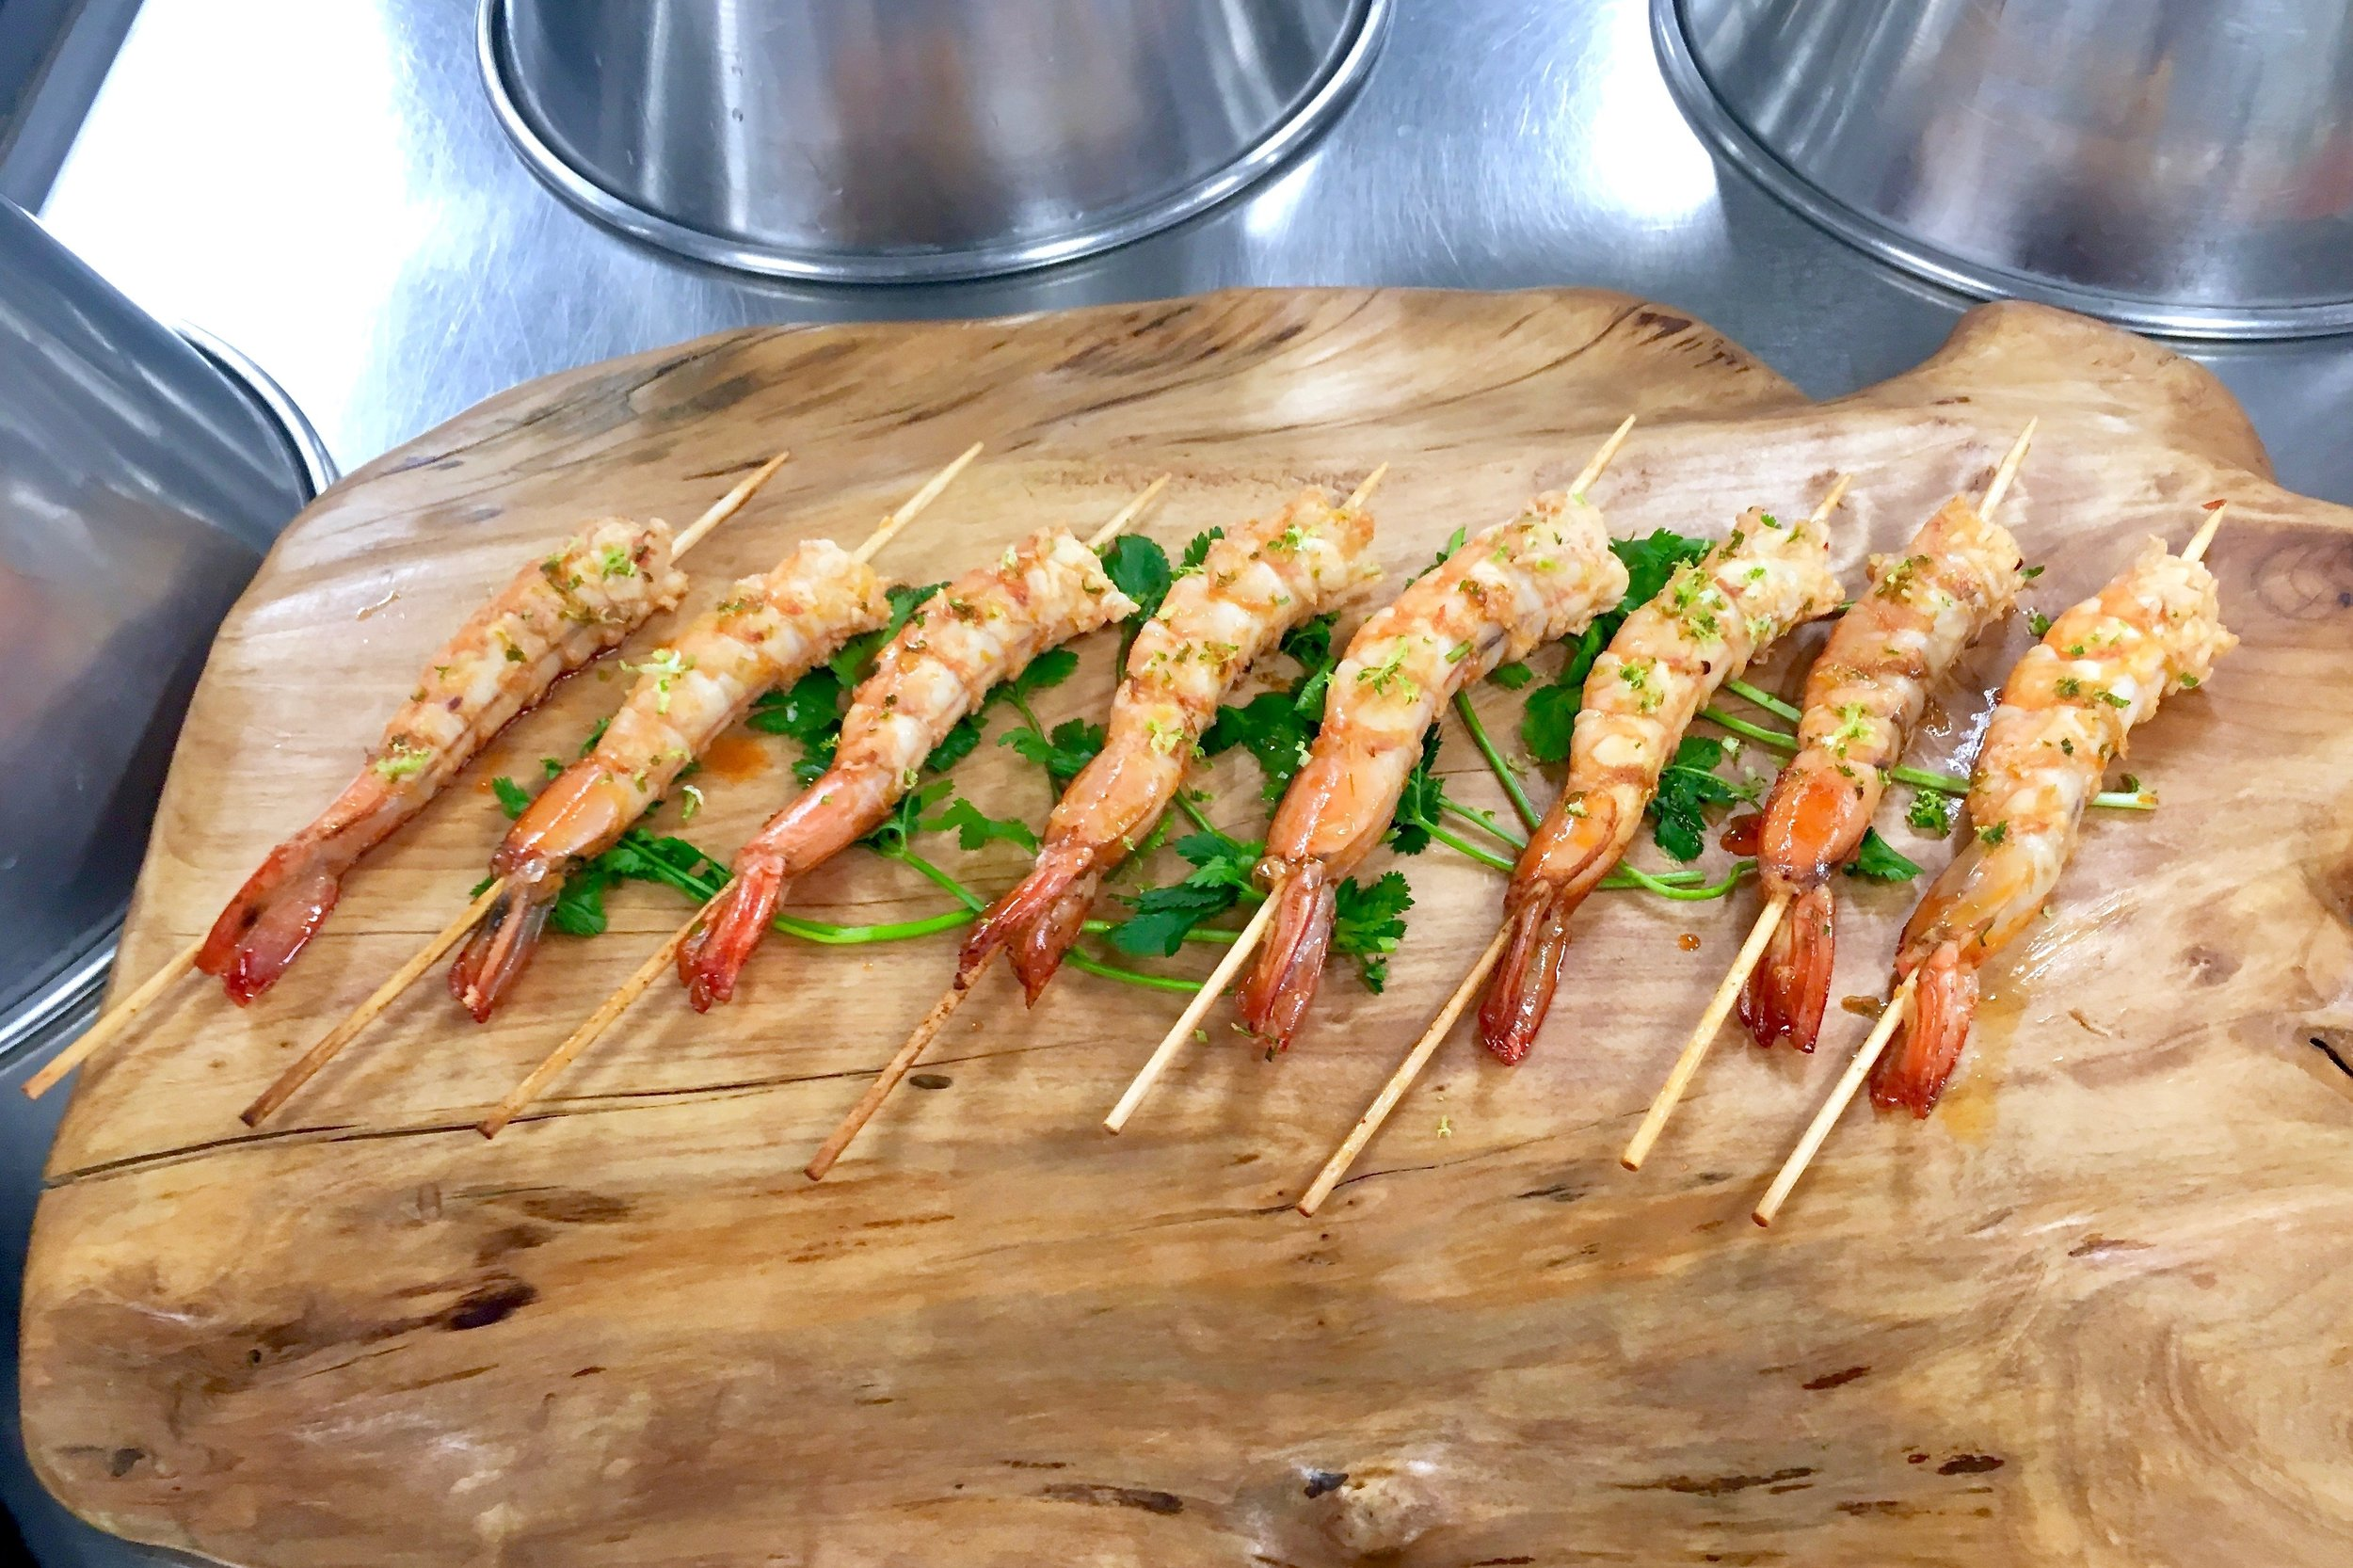 Skewered prawns marinated in Asian spices